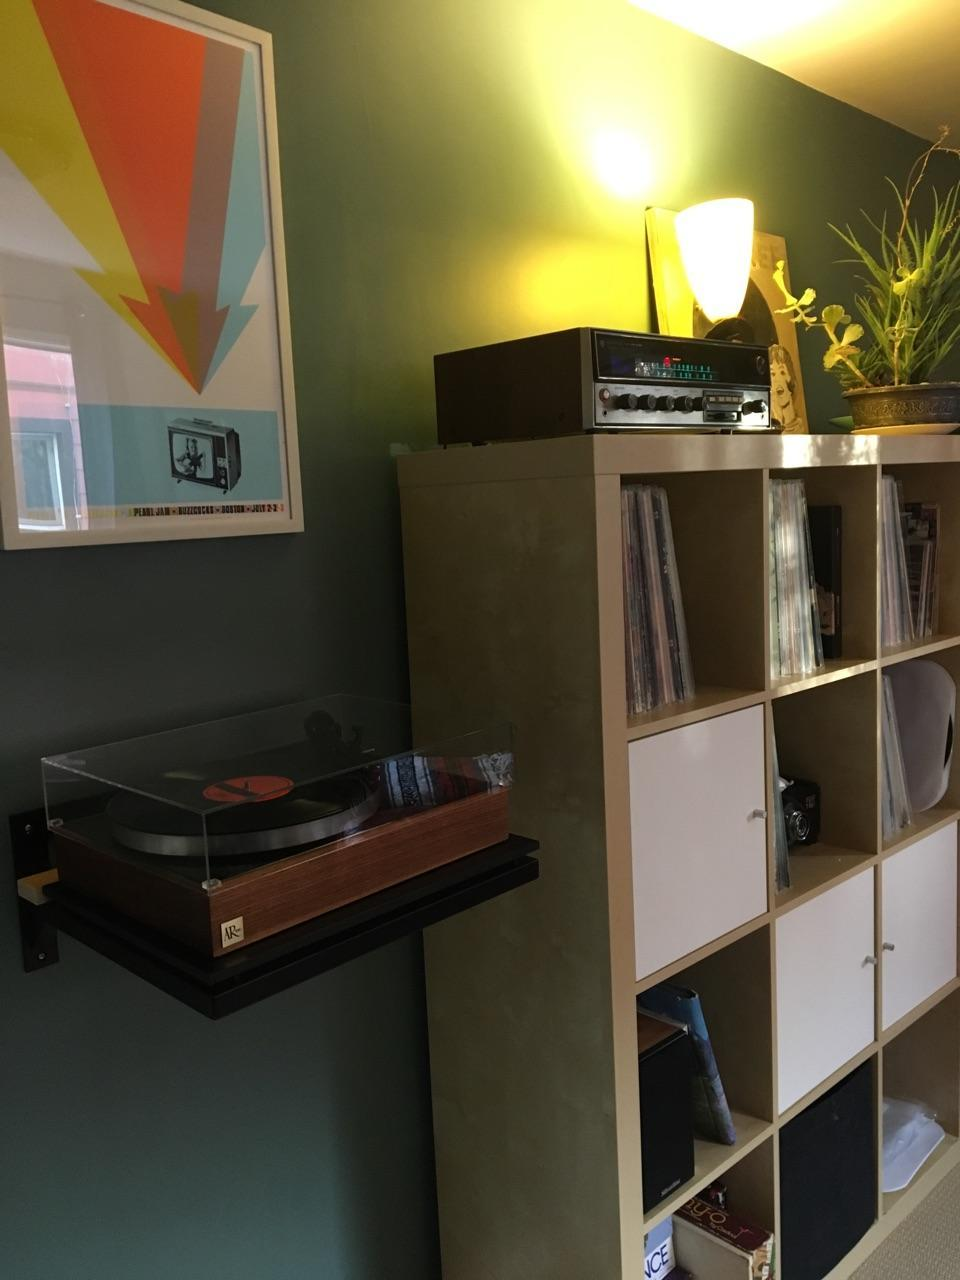 J and S Fisher System:  Kenwood receiver, Silverline speakers, GHA Custom AR-XA/Rega turntable.  Sweet!